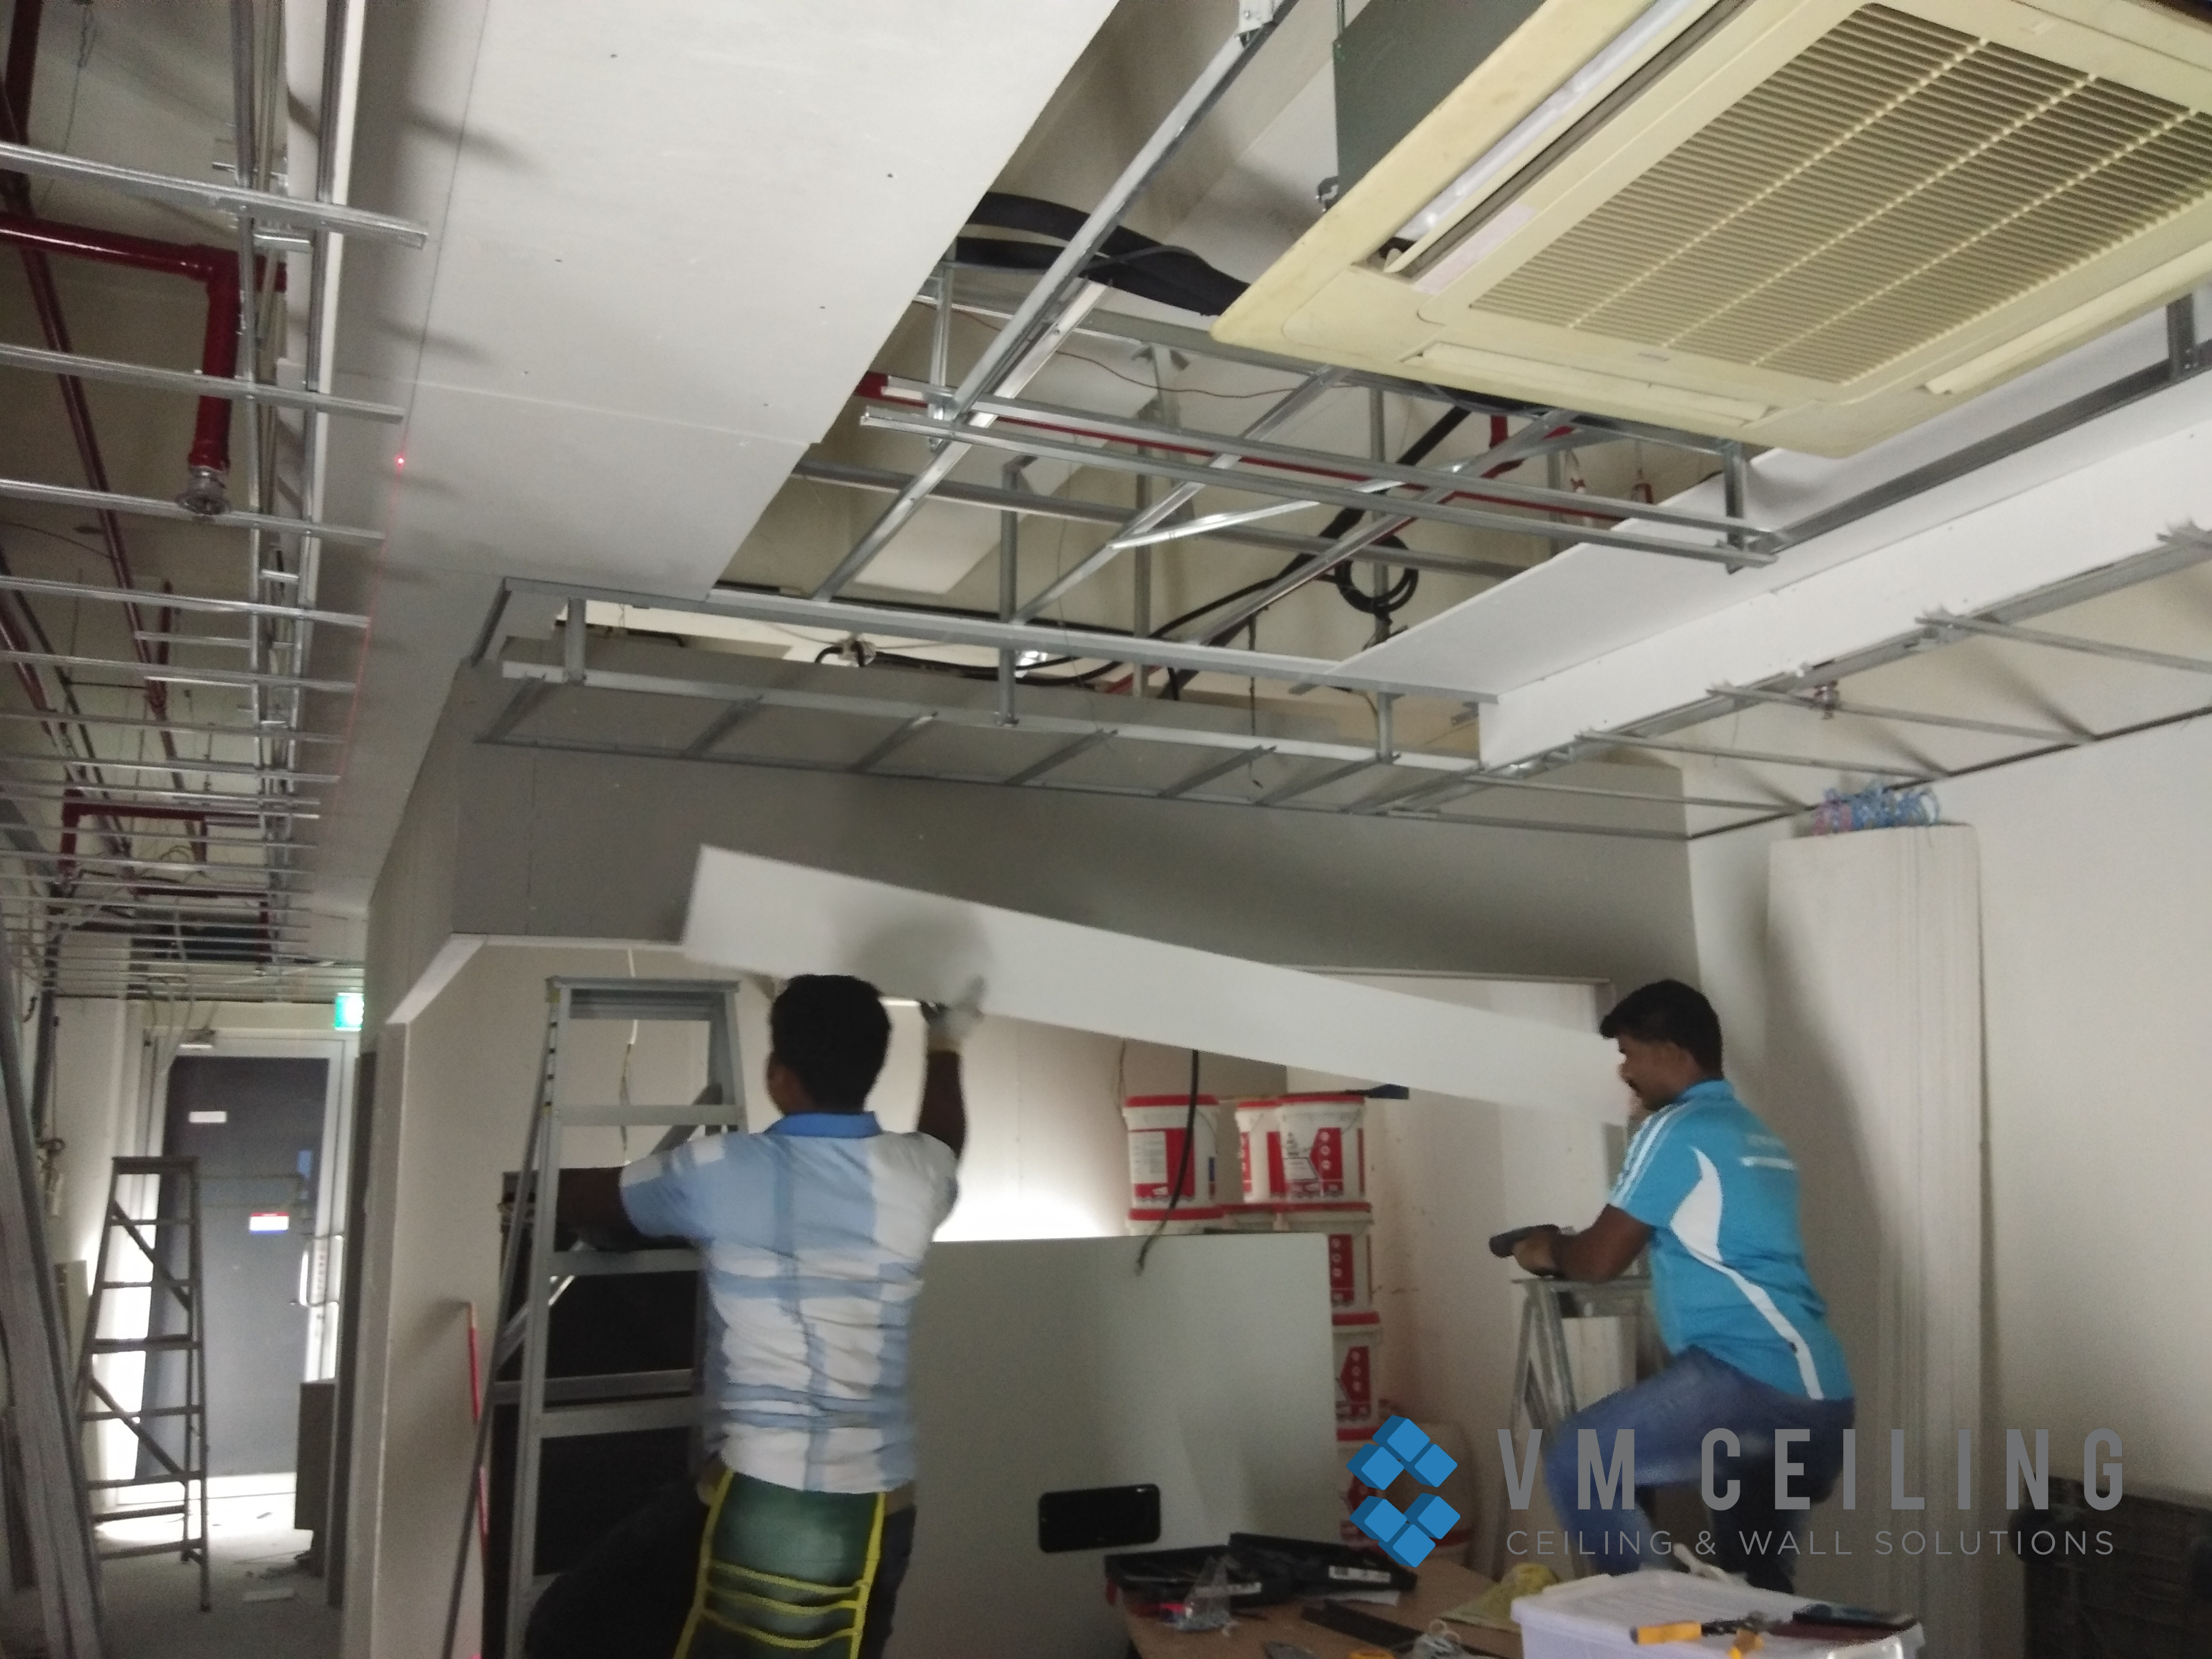 office false ceiling renovation vm ceiling singapore commercial bukit merah 4